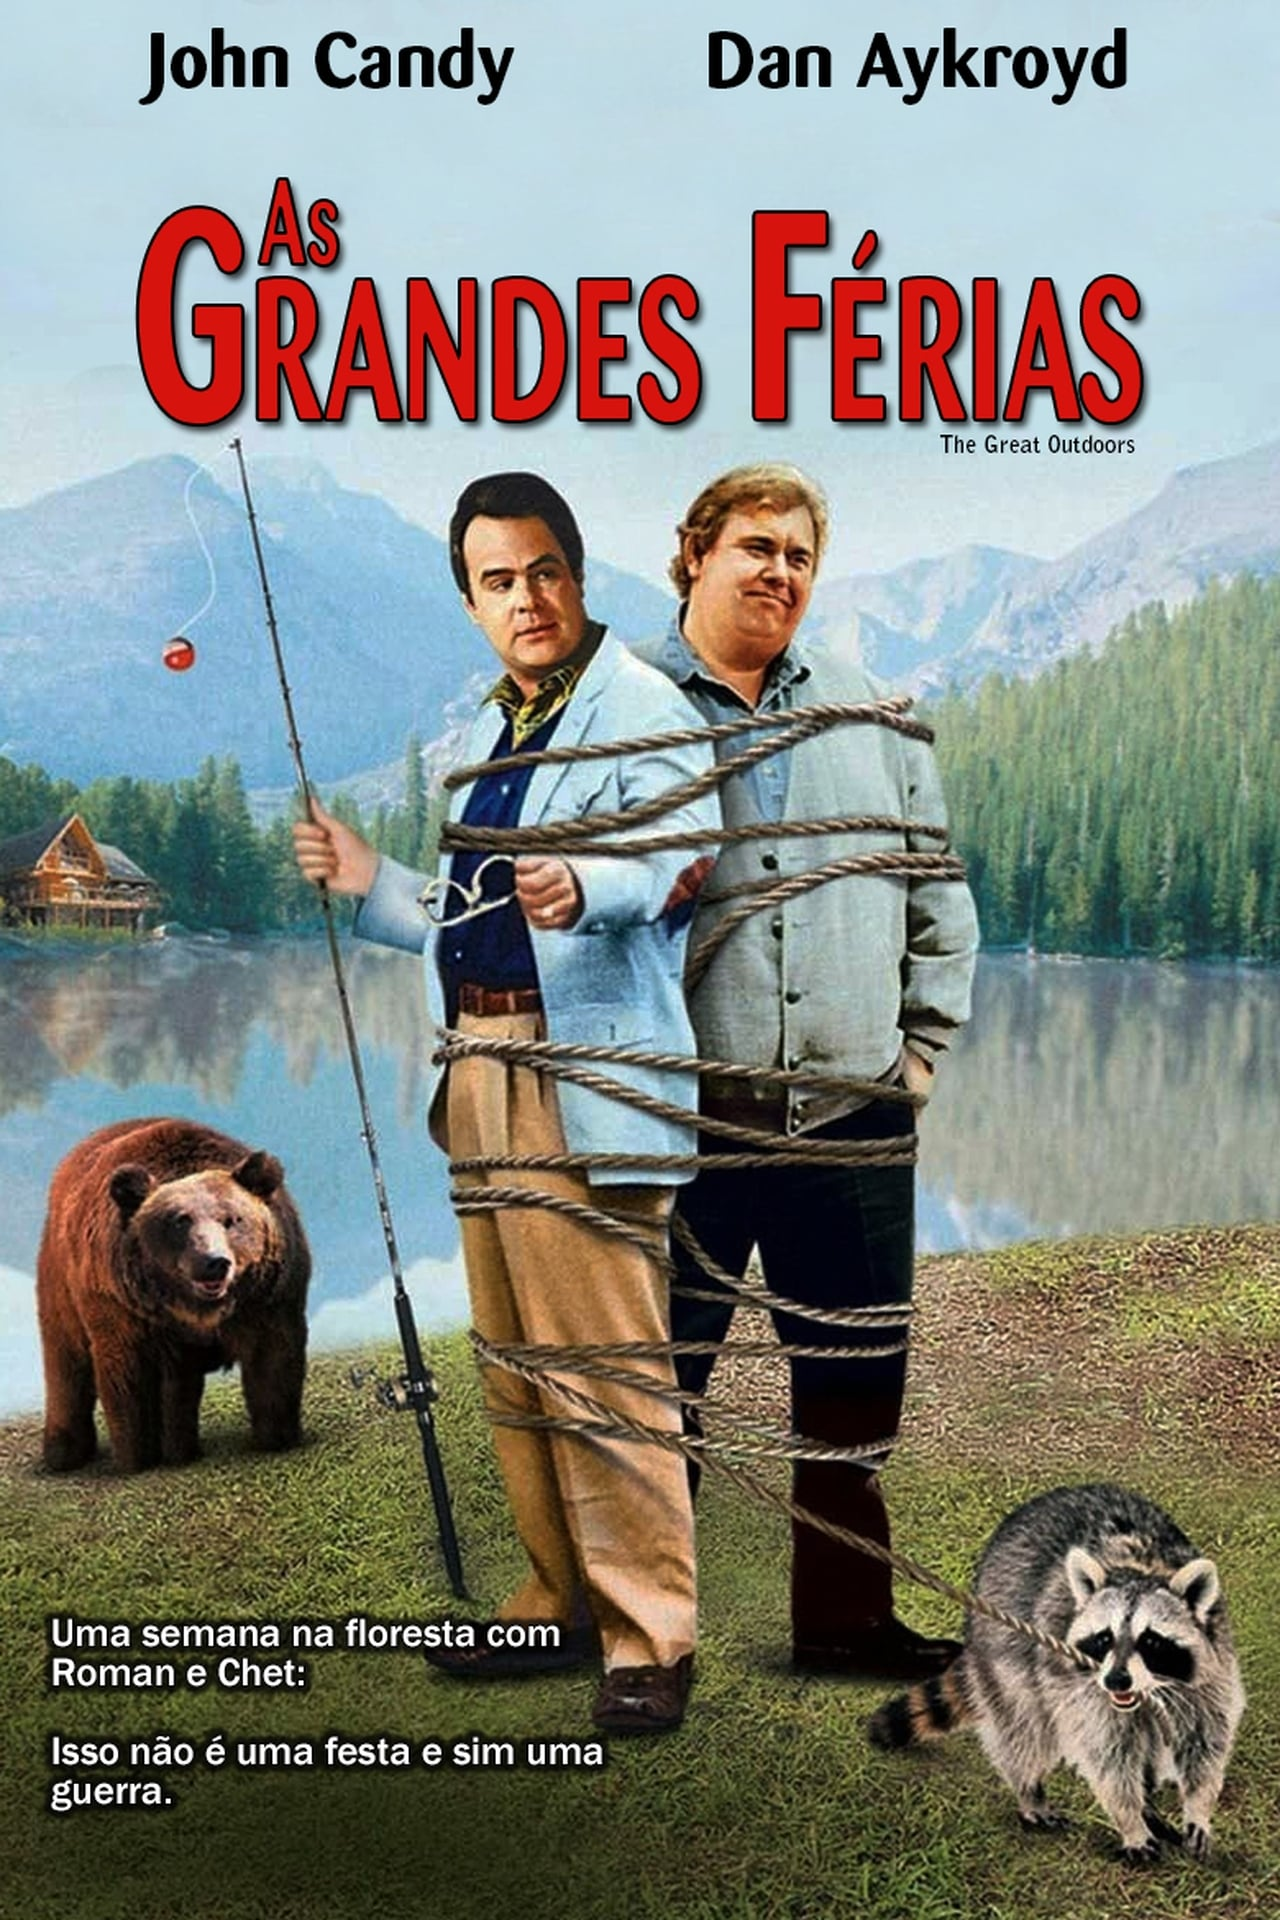 The Great Outdoors (1988) wiki, synopsis, reviews, watch ...